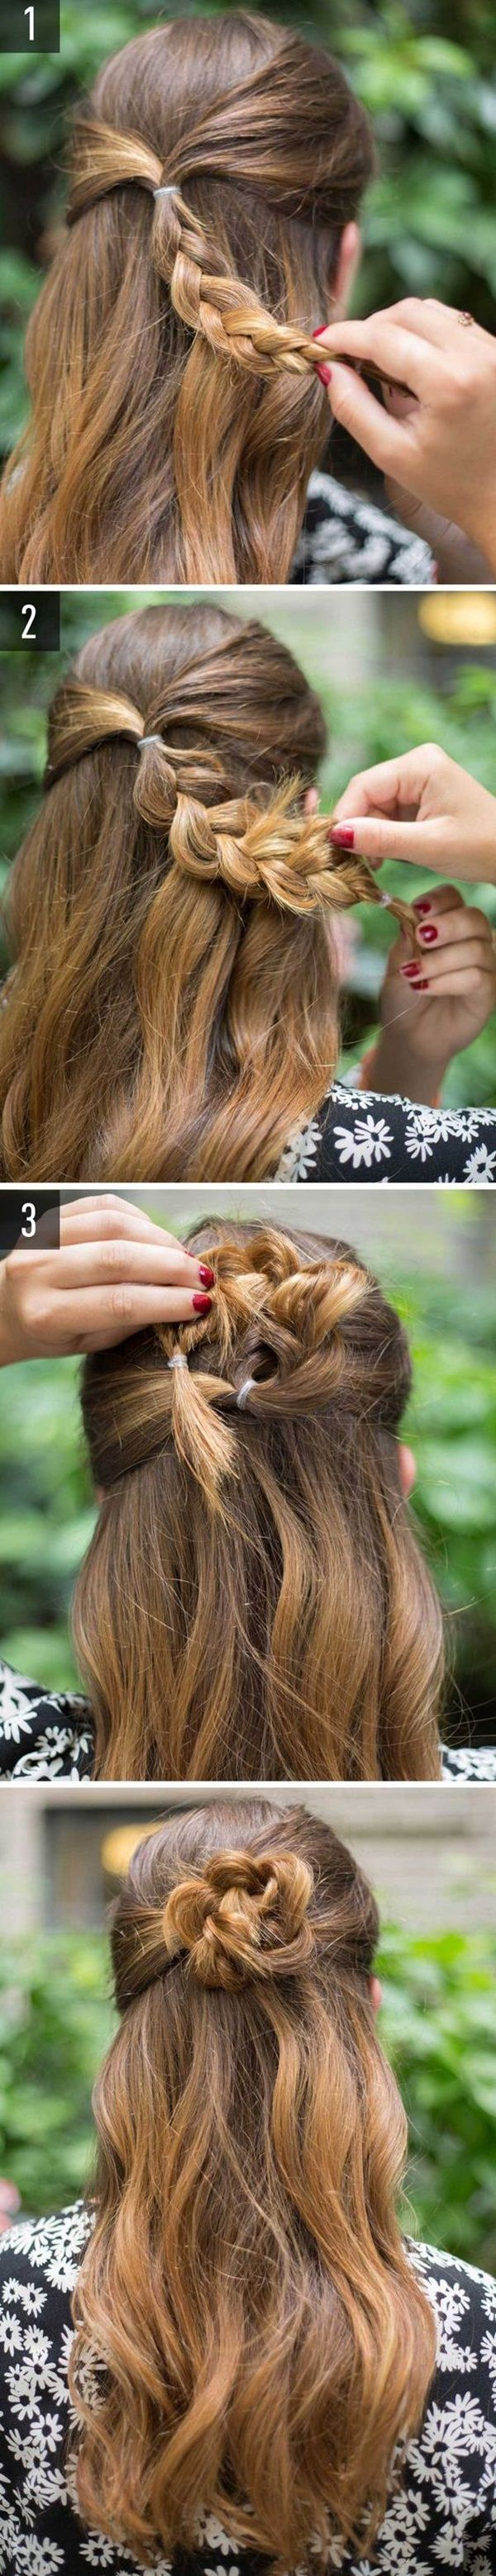 easy hairstyles for schools to try in easy hairstyles